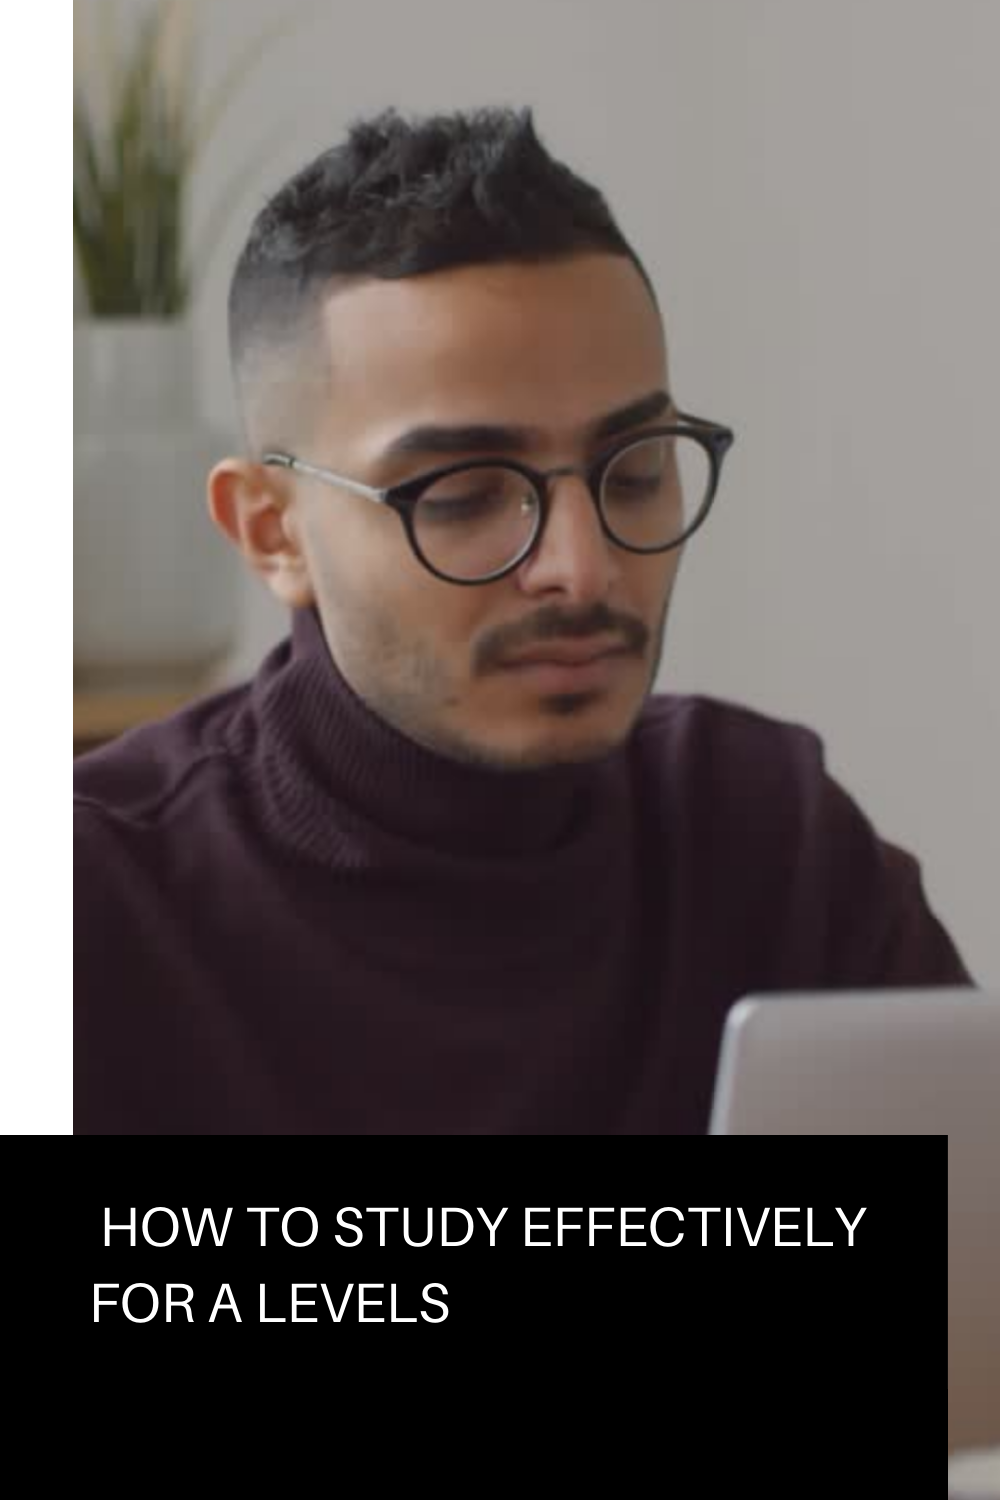 How to study effectively for A Levels. Although the workload in A levels is immense, many students overcome its challenges by studying smarter